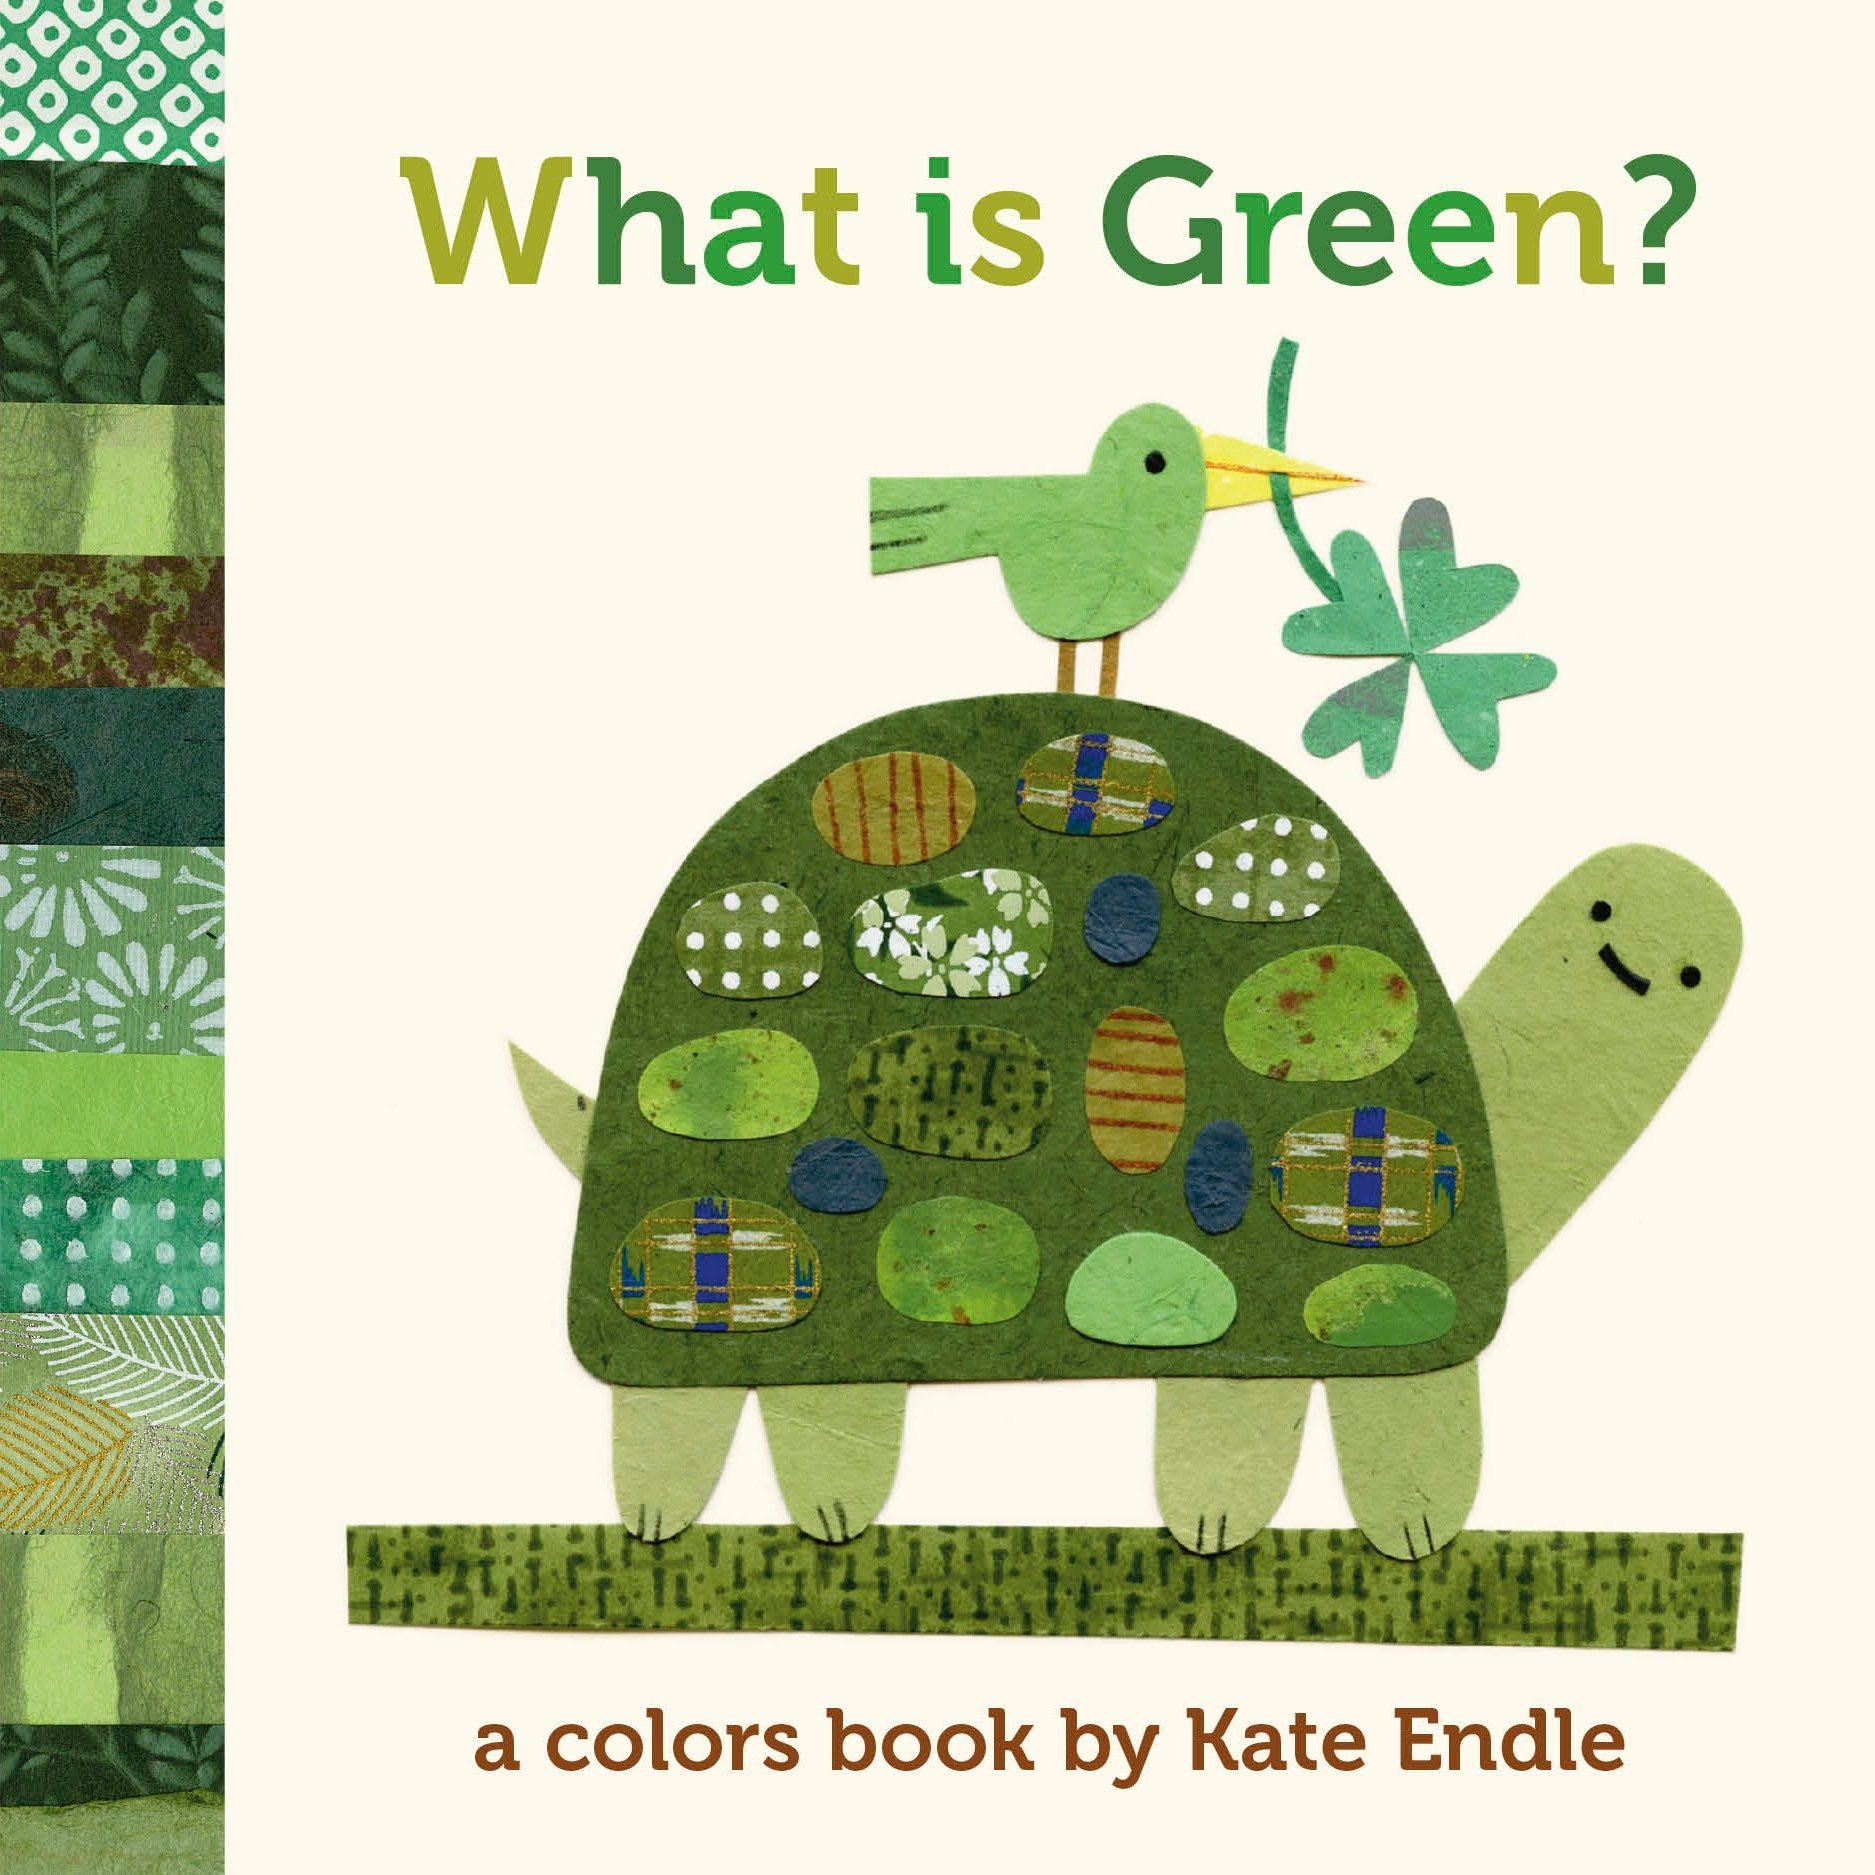 Amazon.com: What Is Green?: A Colors Book by Kate Endle (Colors ...